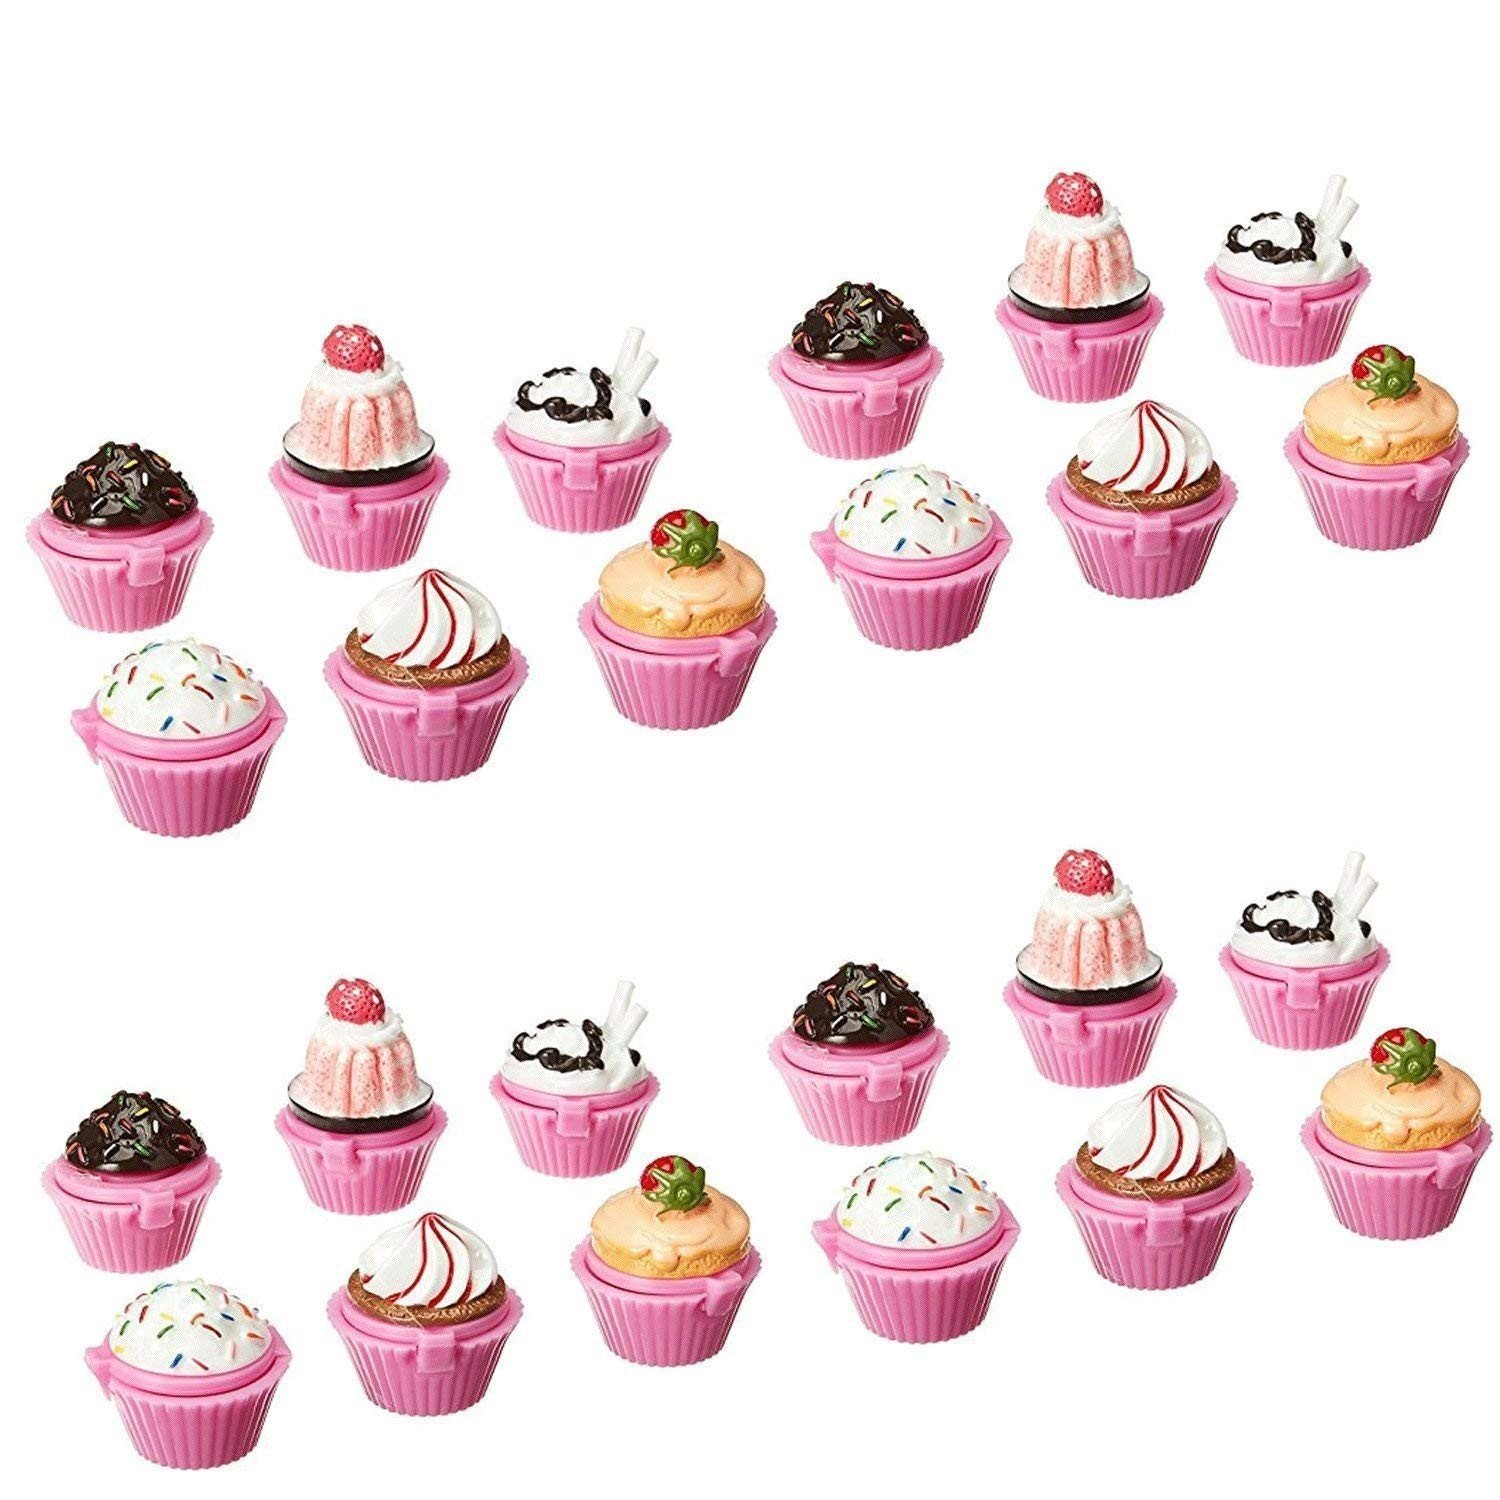 Adorox Scented Novelty Cupcake Lip Gloss Lip Balm Makeup Girls Birthday Party Favors (Assorted (24 Pieces))